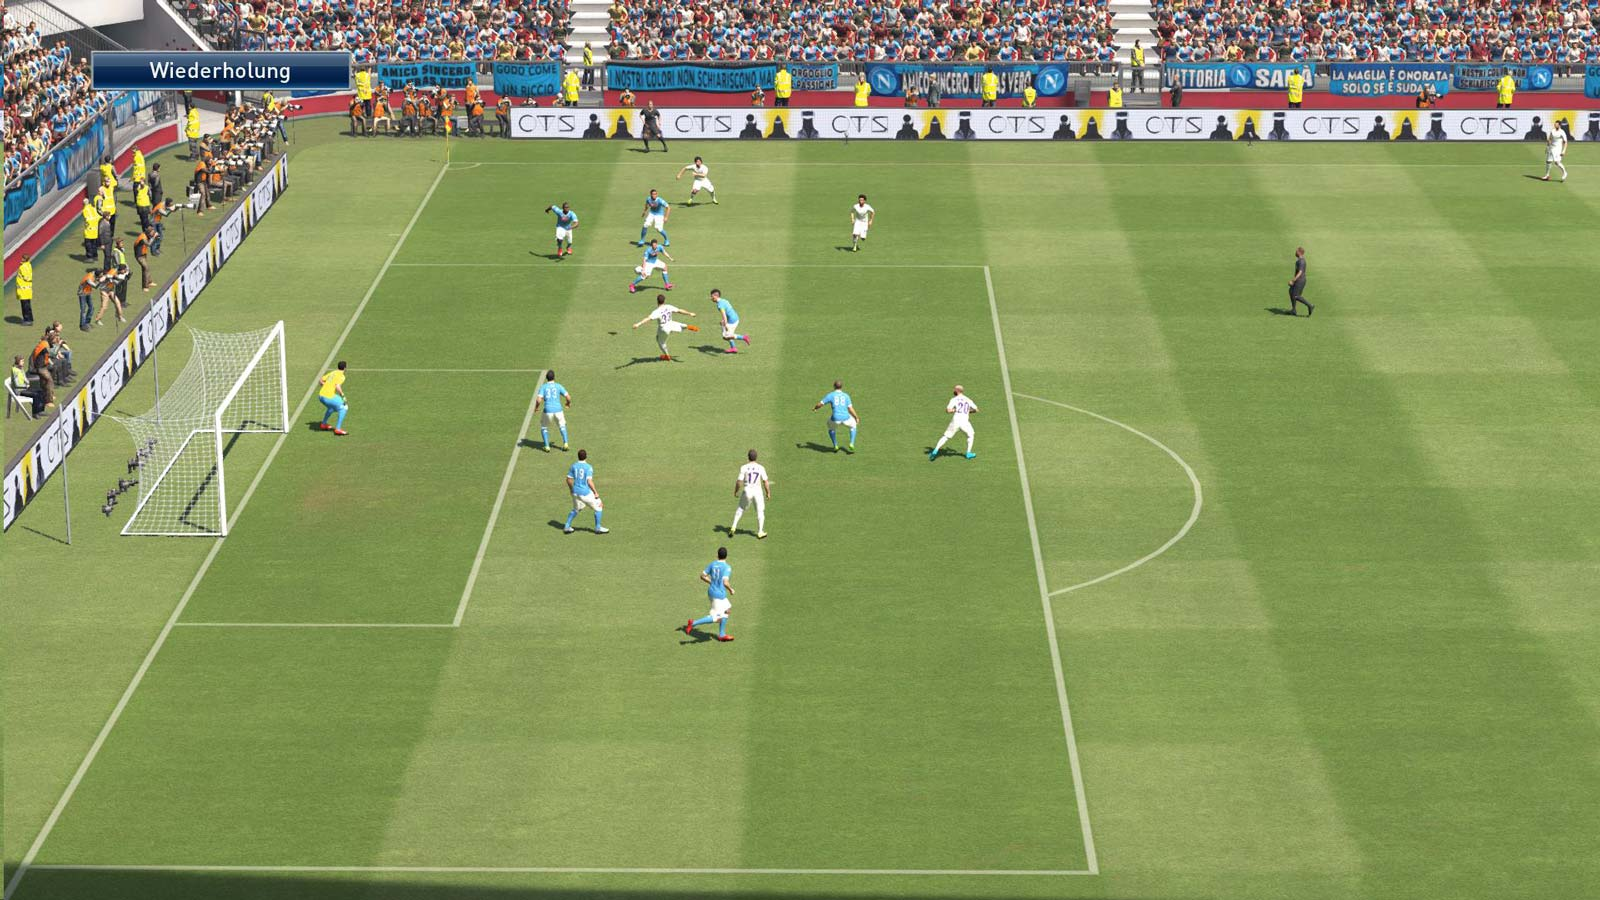 pes-2016-pc-version-screenshots-2.jpg